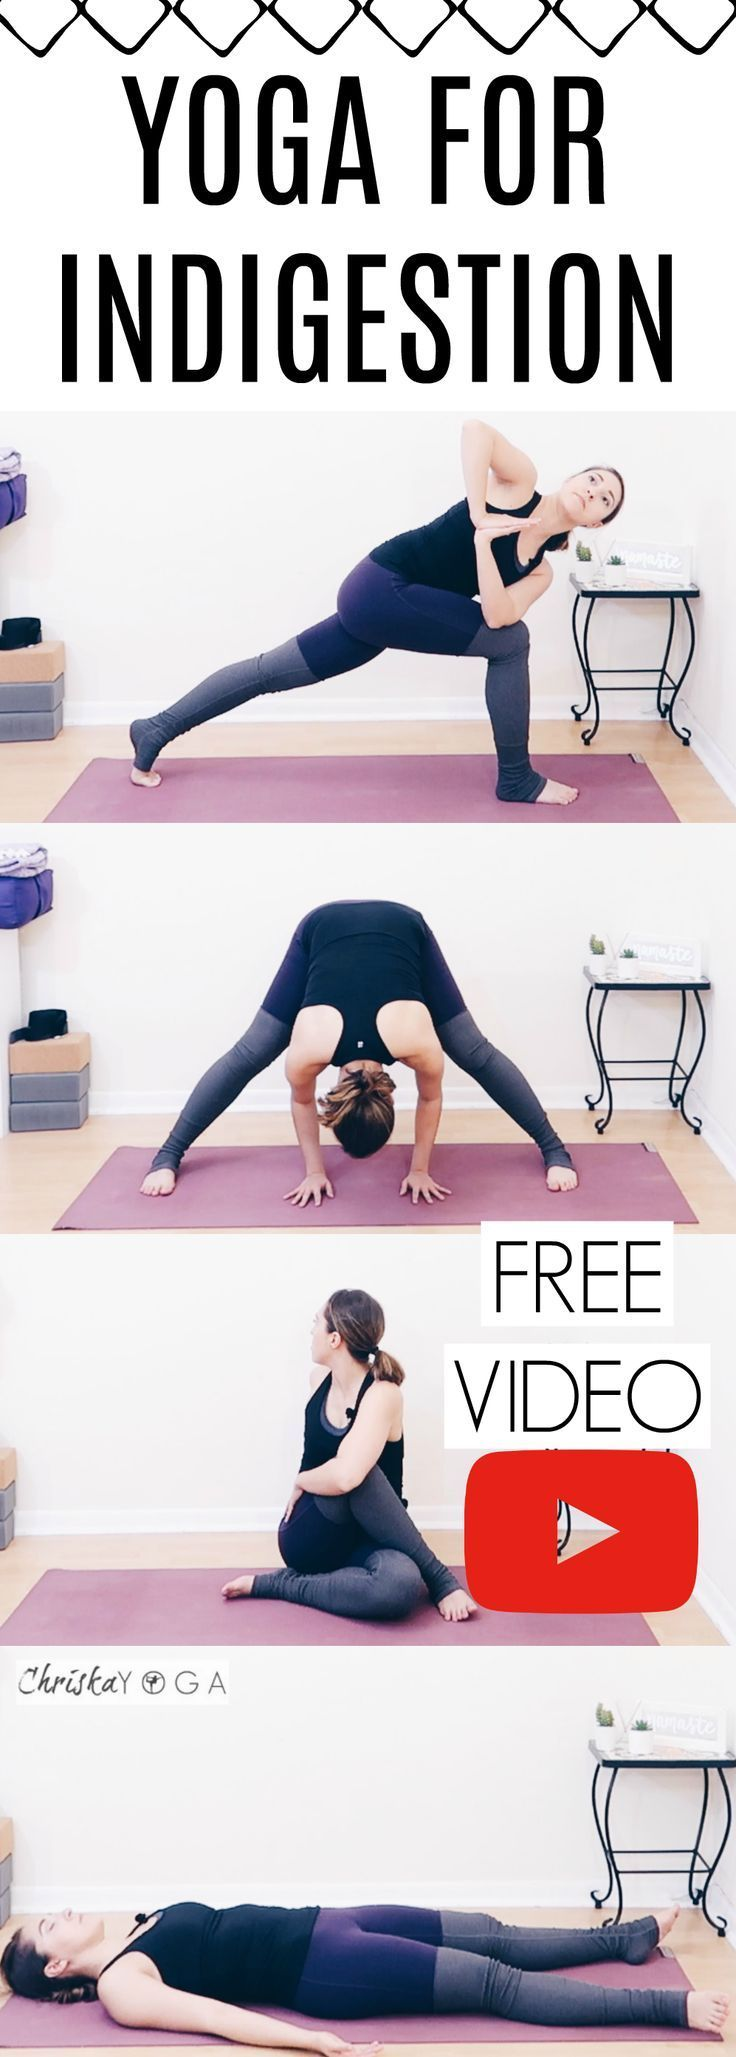 Yoga for Indigestion {20 Min} Yoga for Indigestion {20 Min} | Heartburn, Gas, Bloating, and Upset Stomach Reli... -